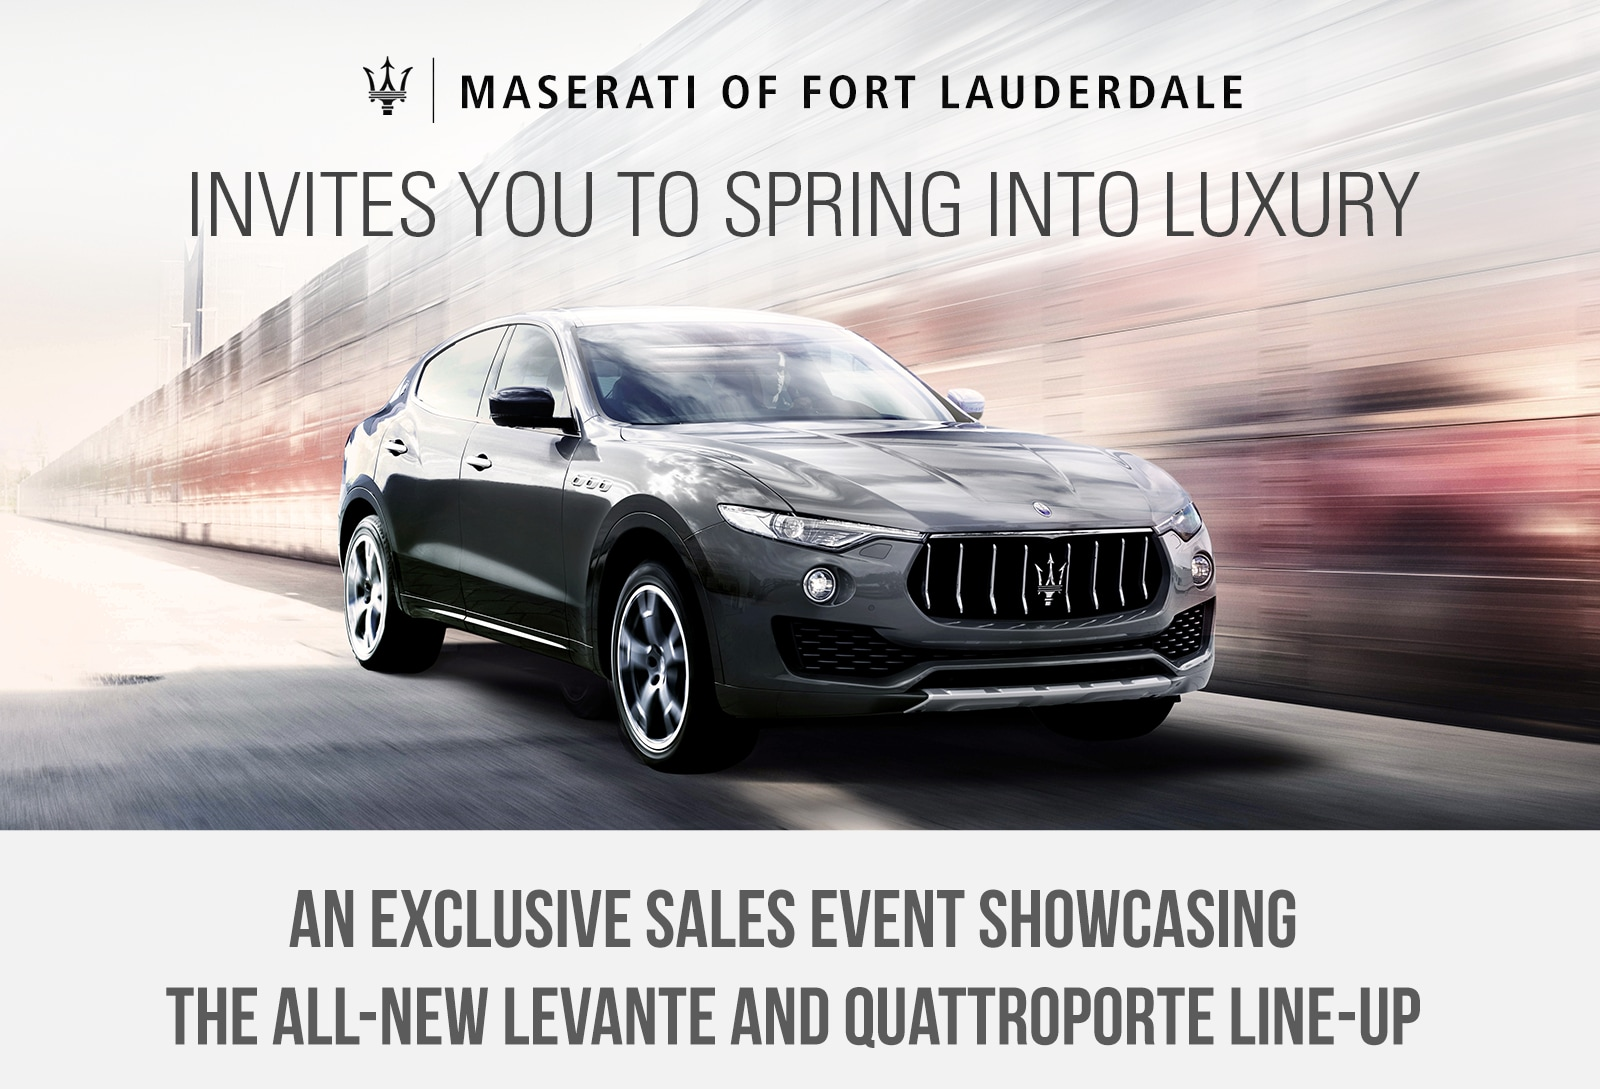 Maserati of Fort Lauderdale Sales event